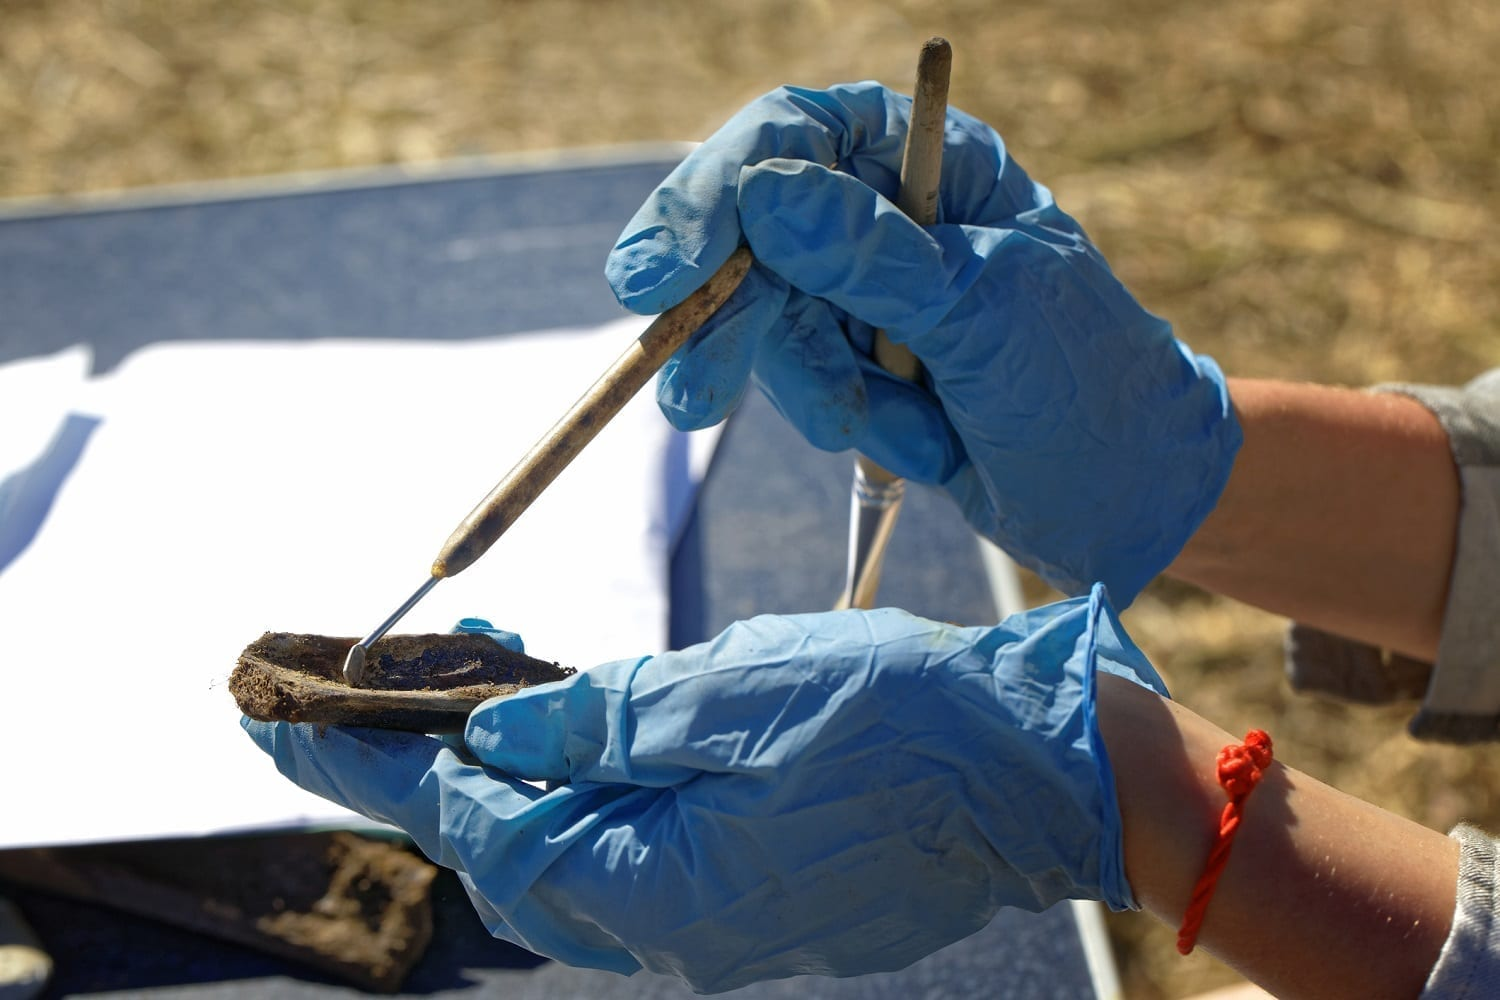 Preparing a bone from an archaeological dig site: ID 124703931 © Krugloff | Dreamstime.com